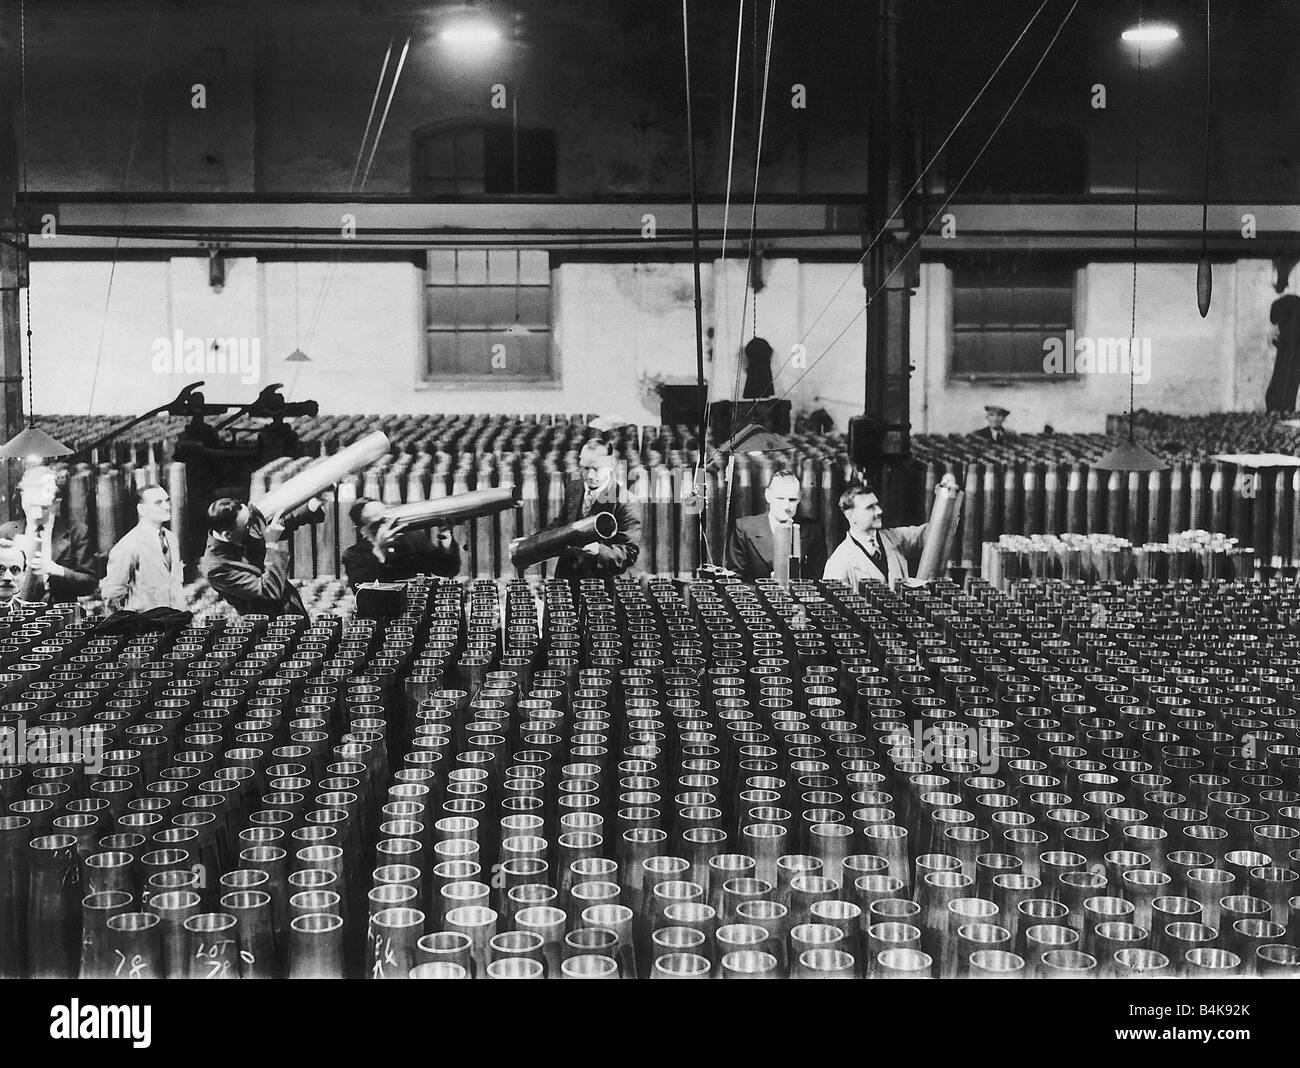 Inspectors check the quality of shells for naval guns in a munitions factory during WW2 1939 world war two - Stock Image